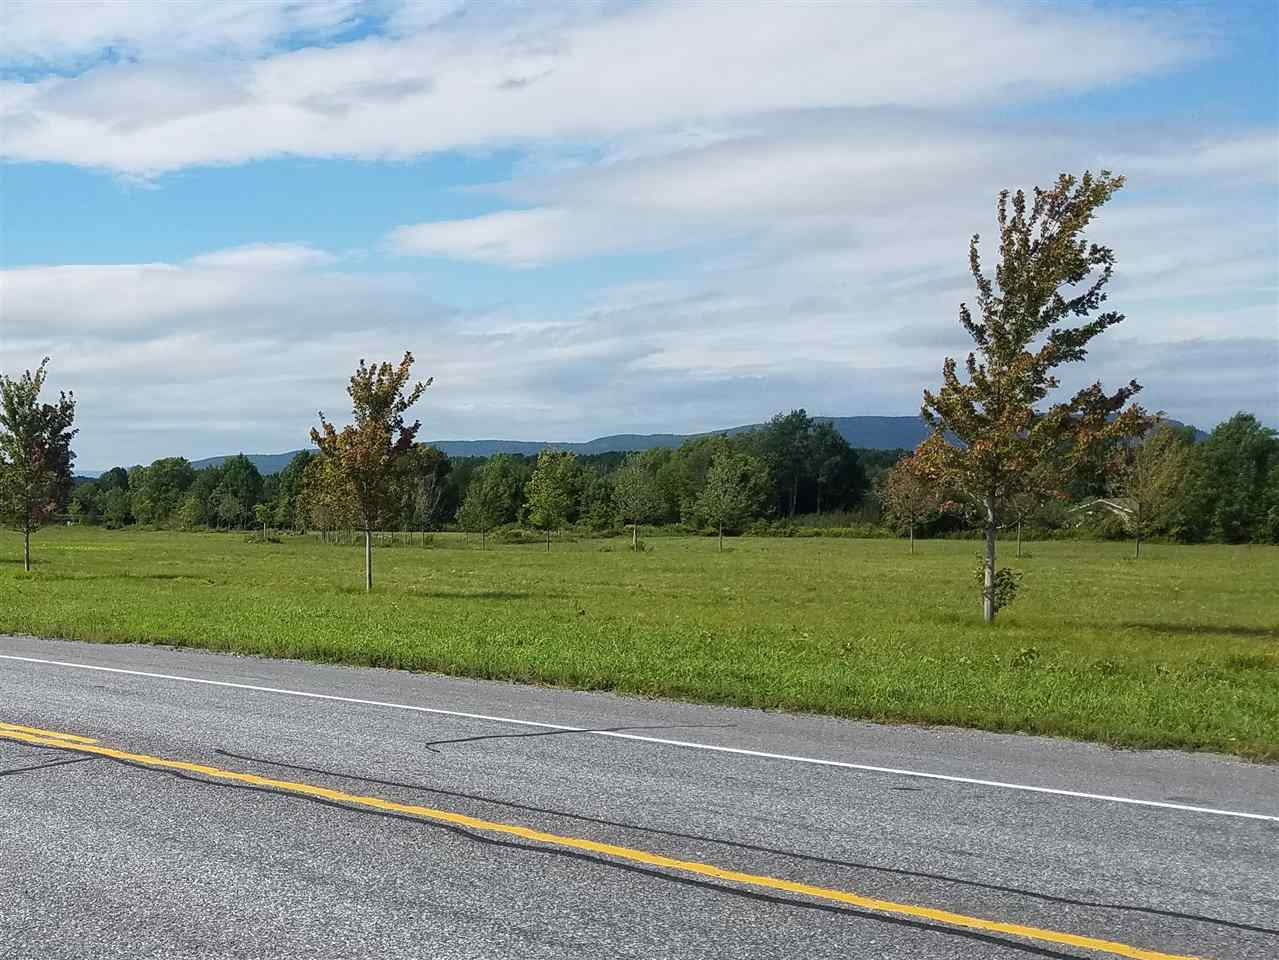 Ready to build commercial lot with great exposure on Route 7! Lot #4 has 2.2 acres of area and has approximately 250 feet of road frontage on Route 7. Gently sloping lot is ready for your business. Electric and septic have been piped to the lots and will be ready for hook-up. 3 Phase Power Available! Don't miss the opportunity to locate your business in this 5 unit subdivision in the heart of Addison County.